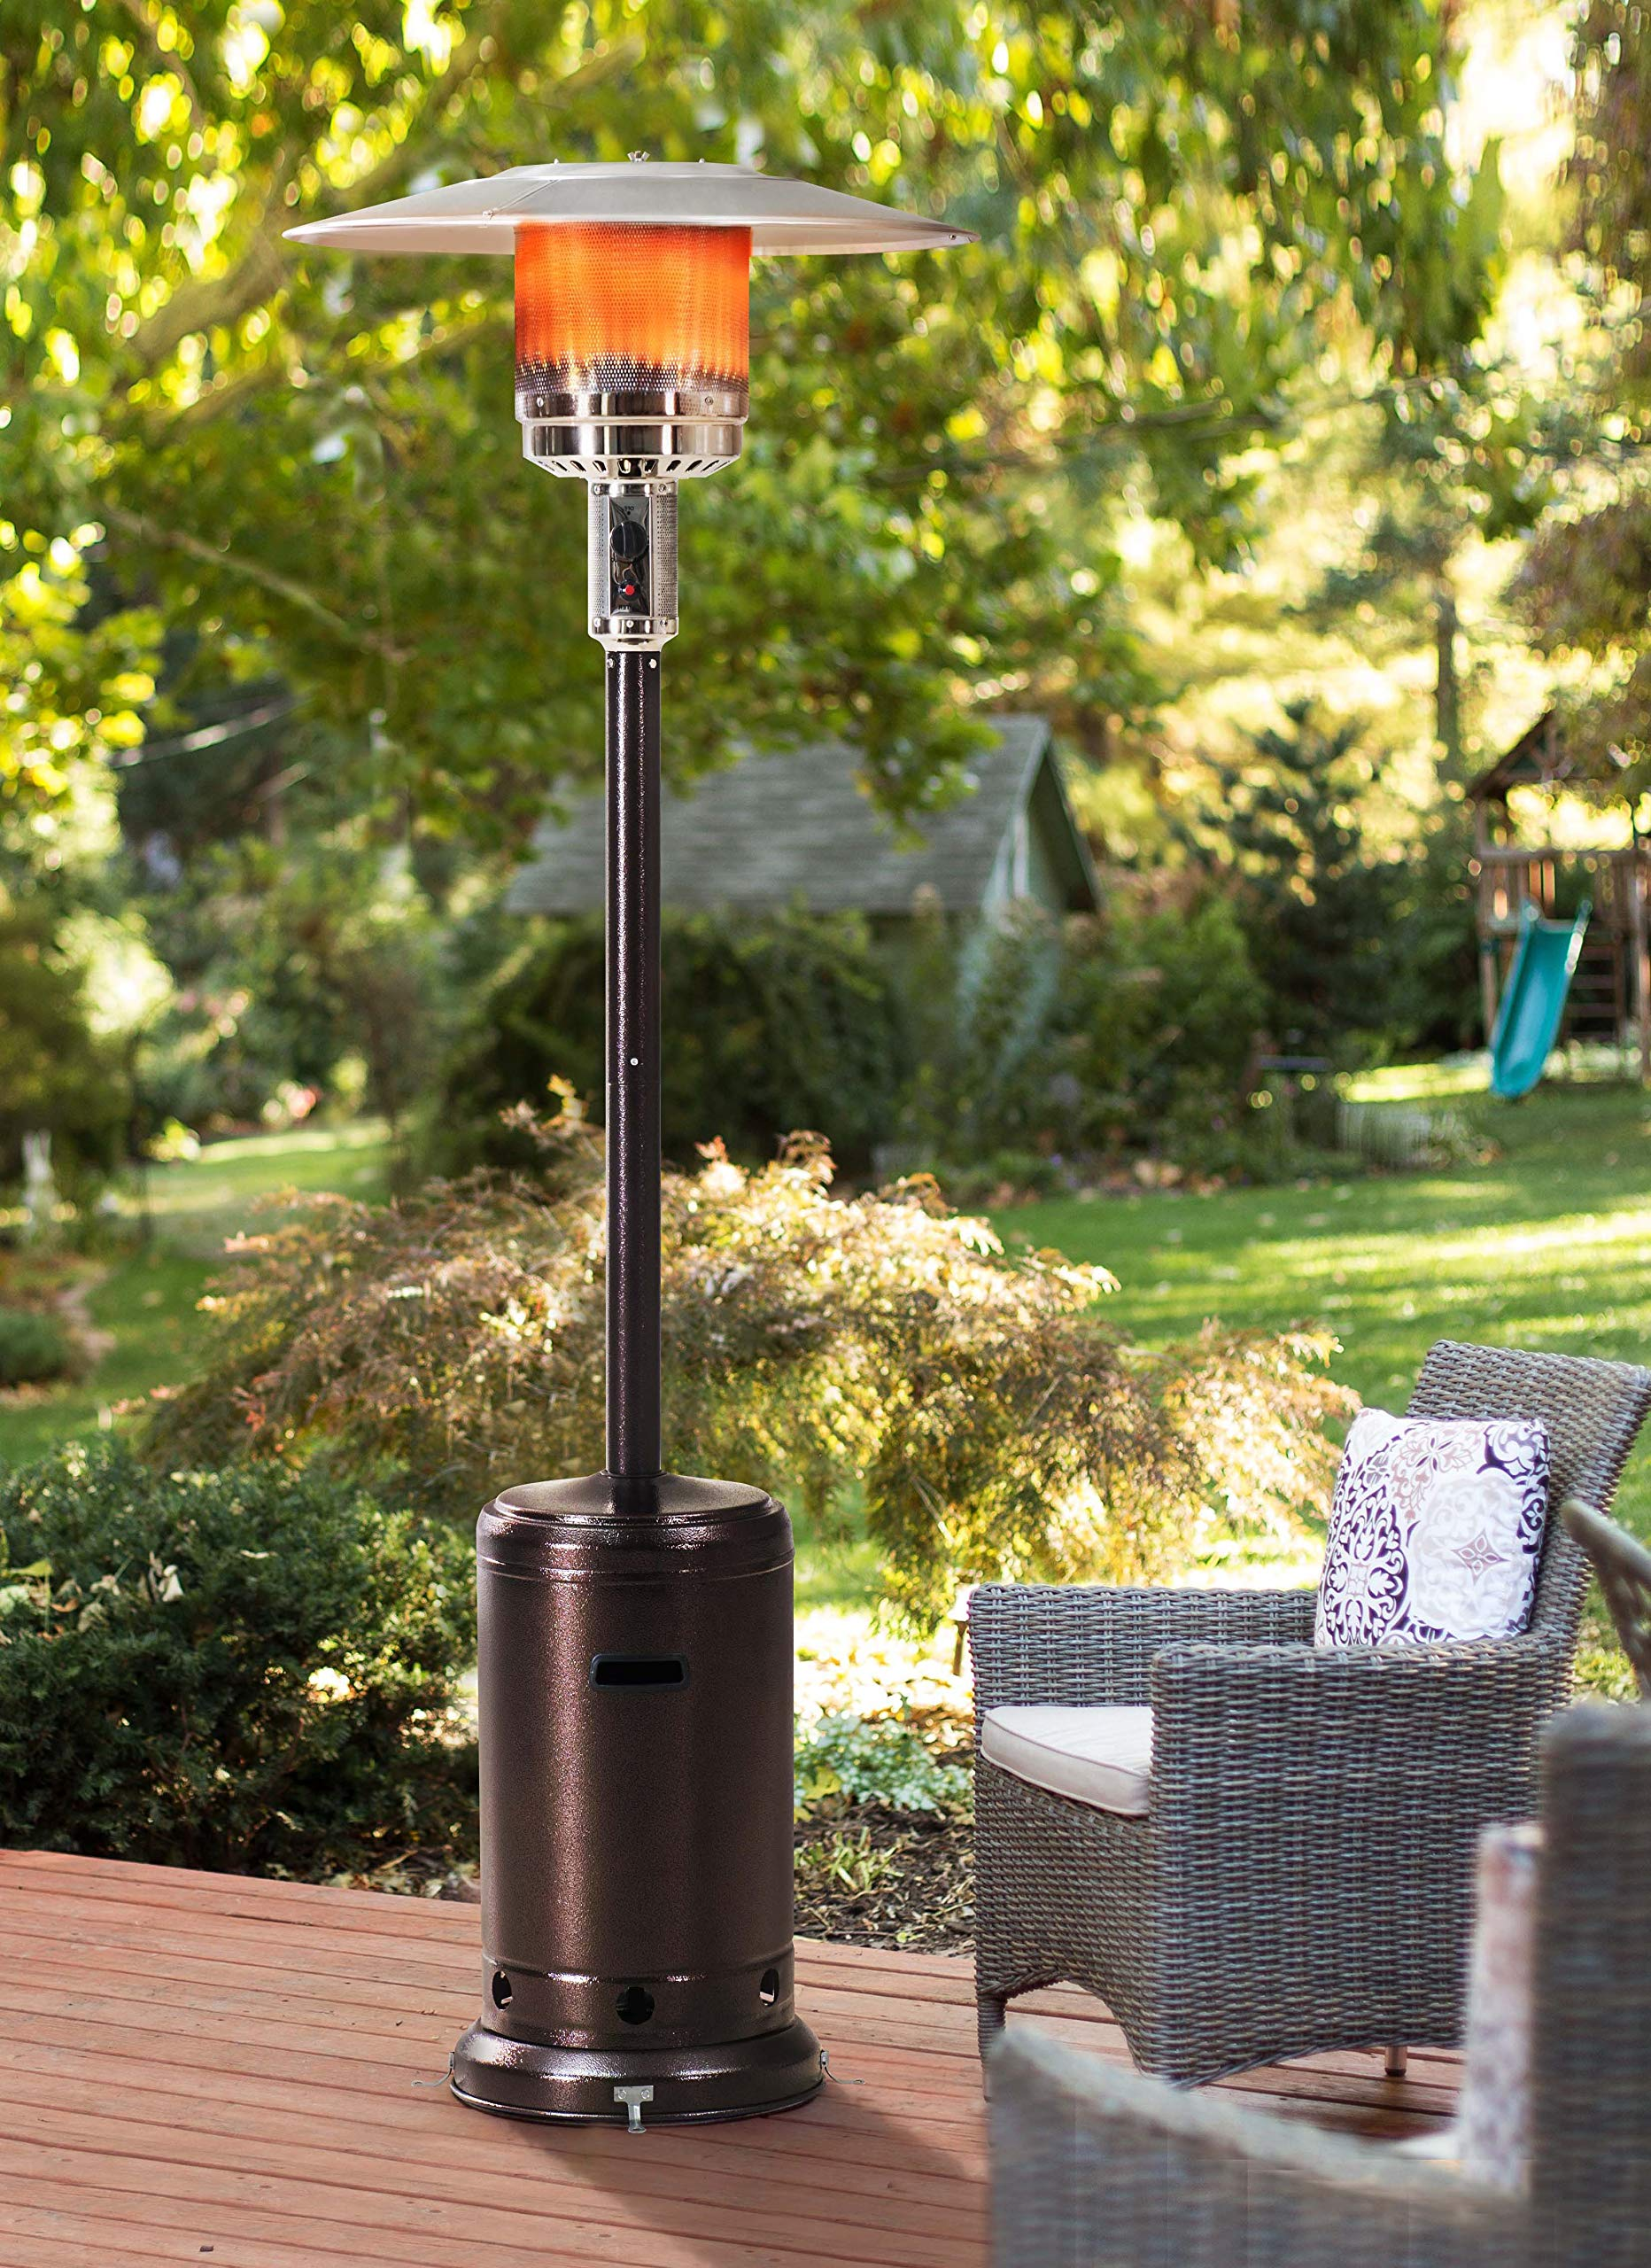 Sunjoy Lawrence Floor-Standing Patio Heater, 88'', Bronze Hammered Finished by Sunjoy